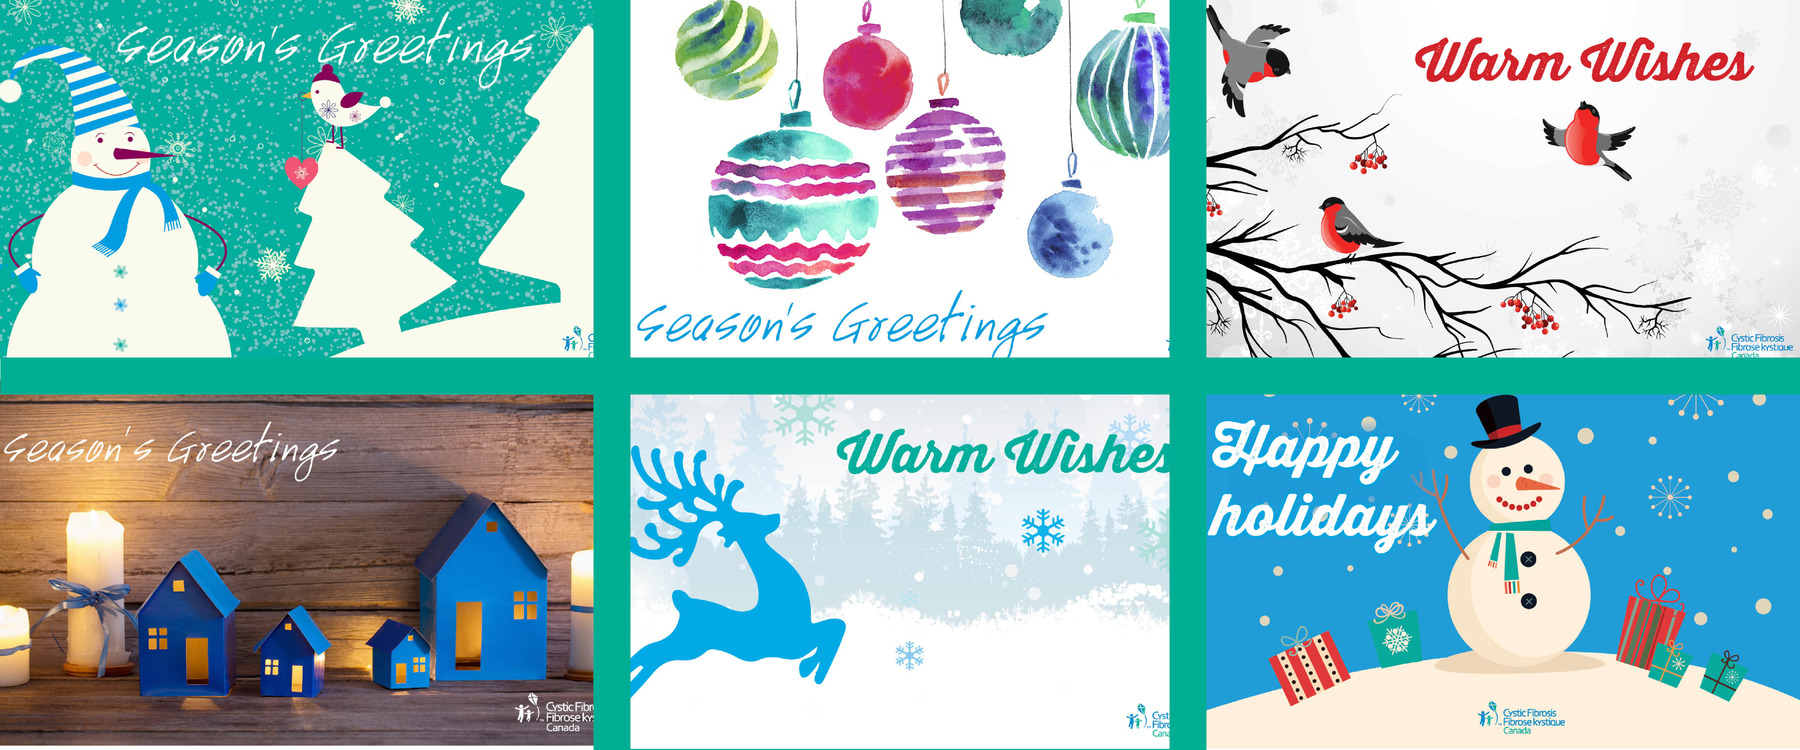 holiday e-cards